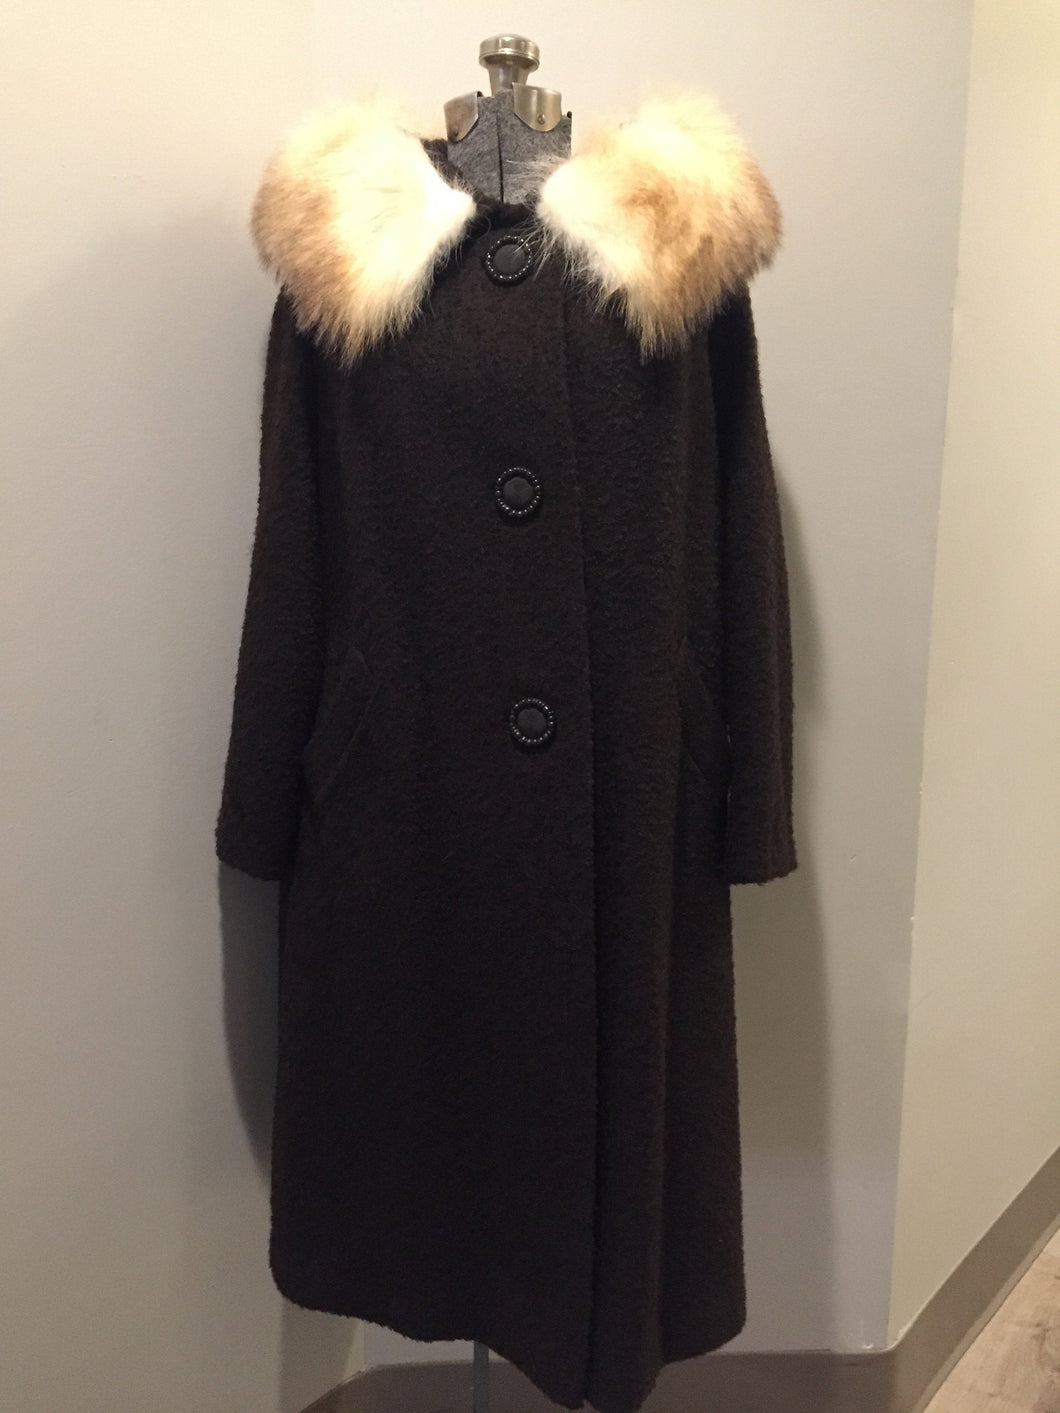 Kingspier Vintage - Beautiful mid-century brown boulé wool coat with a white fox fur collar. Fits a size 12, length: mid calf.